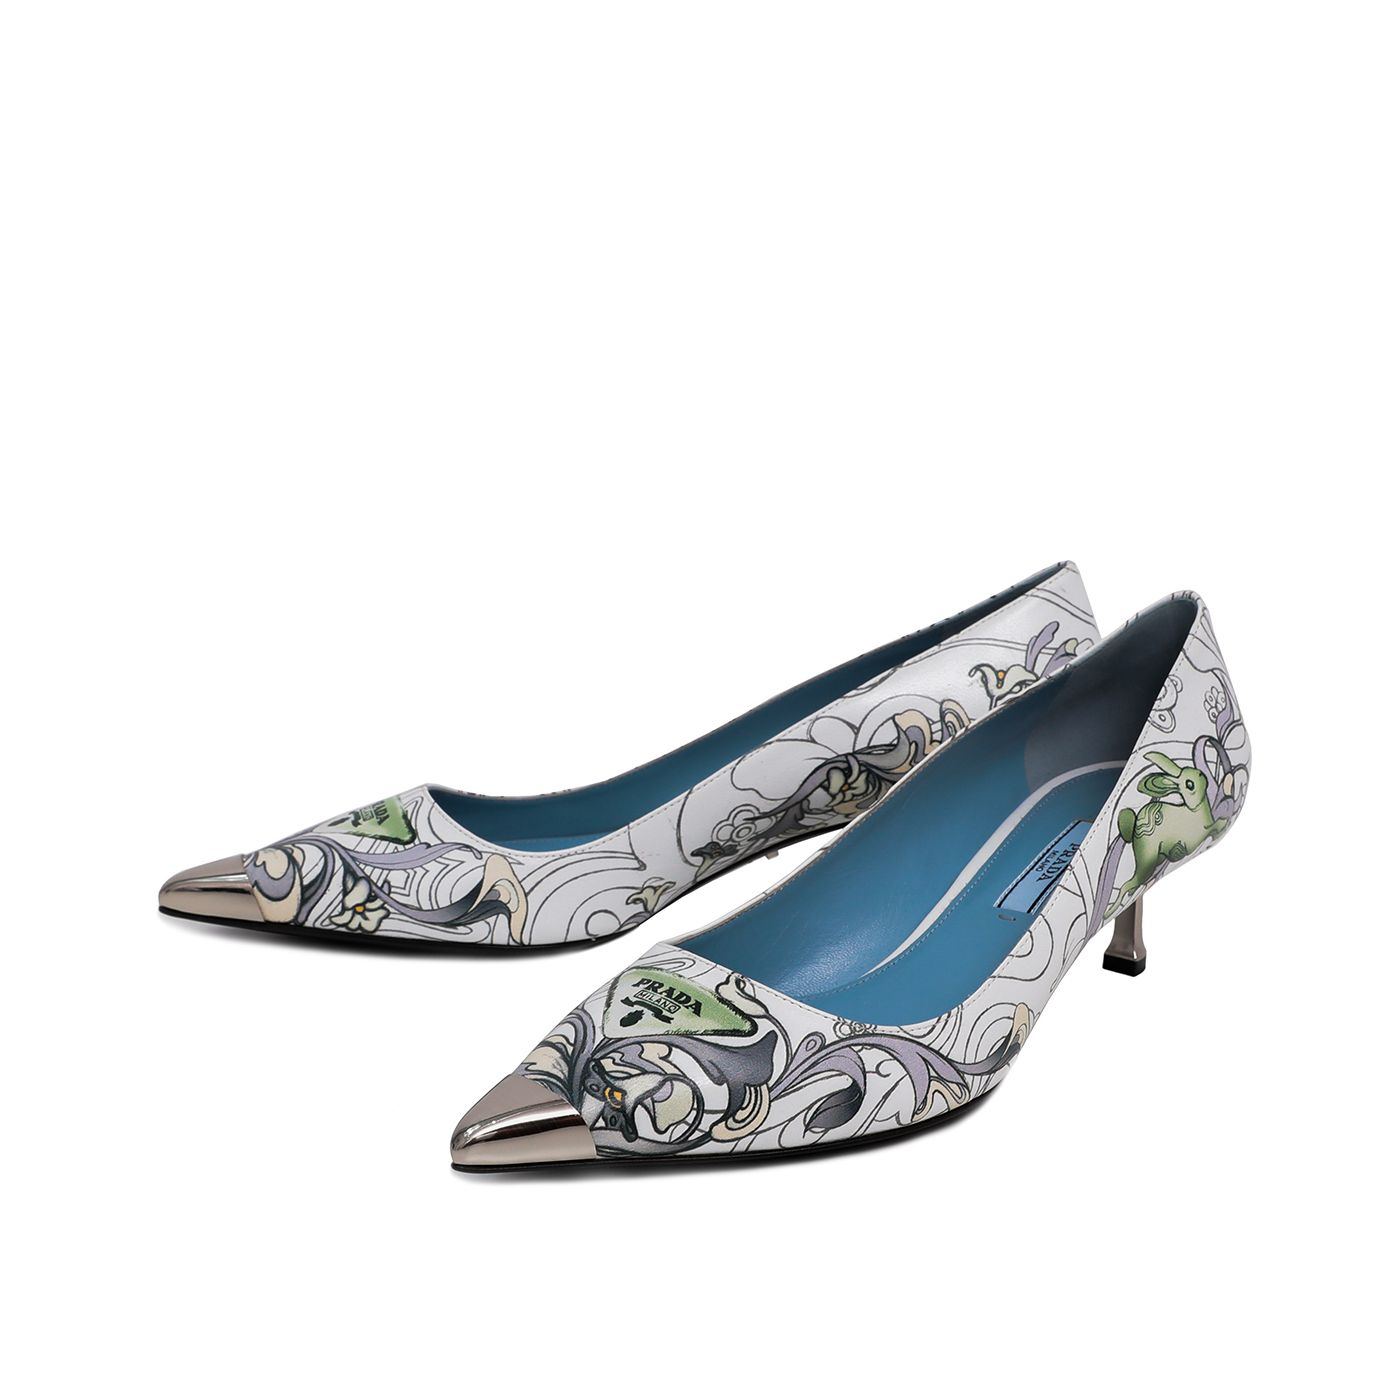 Prada Multicolor Metal Captoe Printed Kitten Heel 38